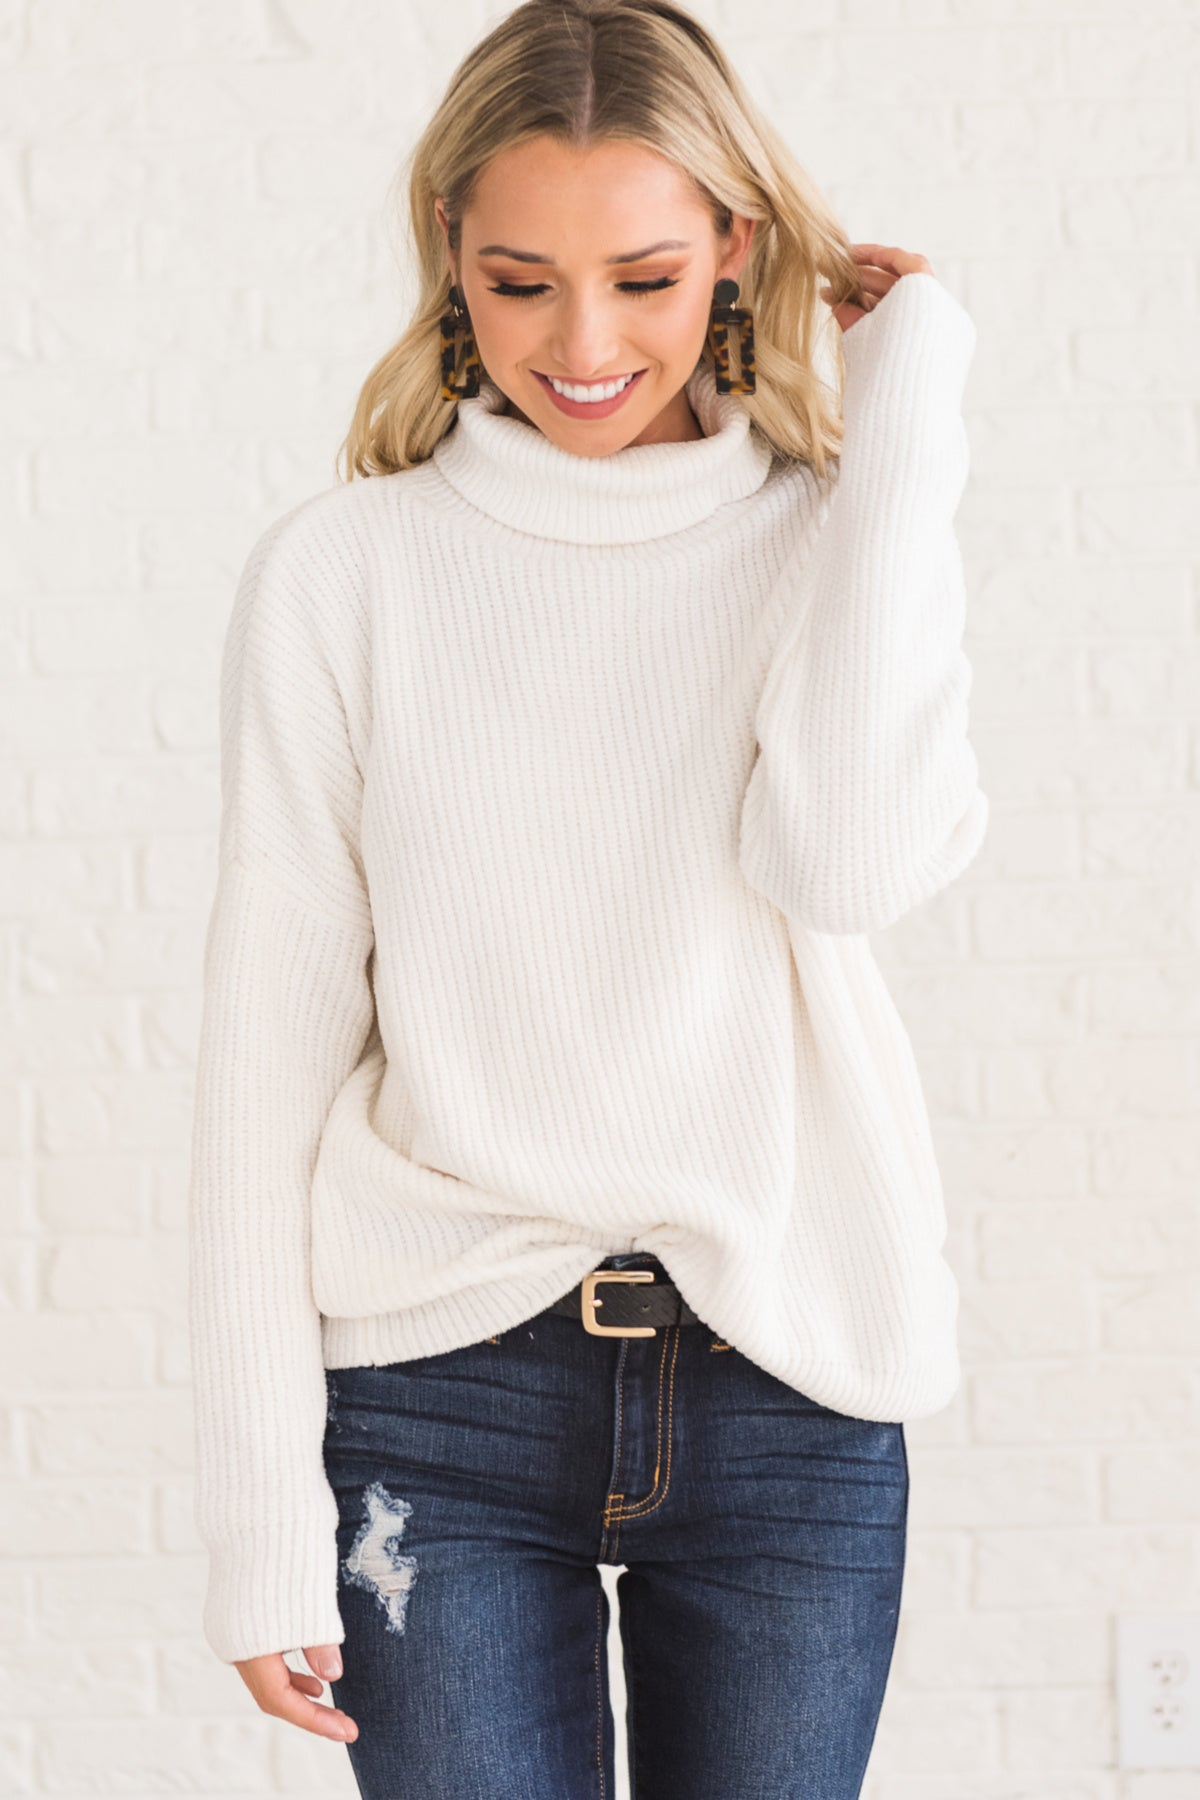 32e9fbba022400 White Cute Cozy Warm Soft Knit Chenille Sweaters with Cowl Neck